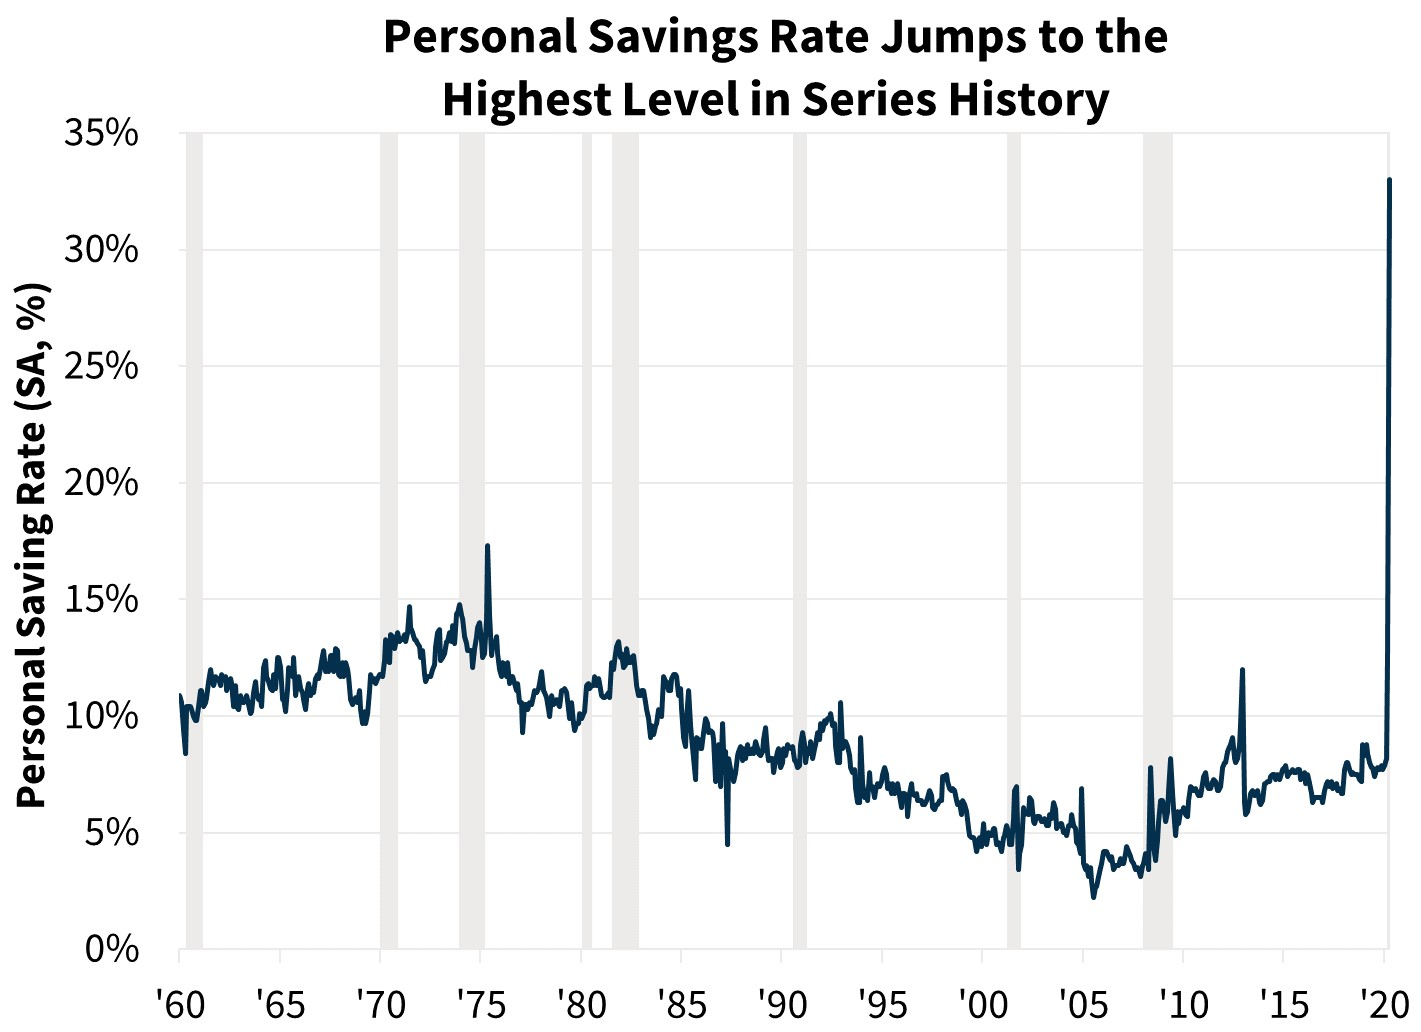 Personal Savings Rate Jumps to the Highest Level in Series History